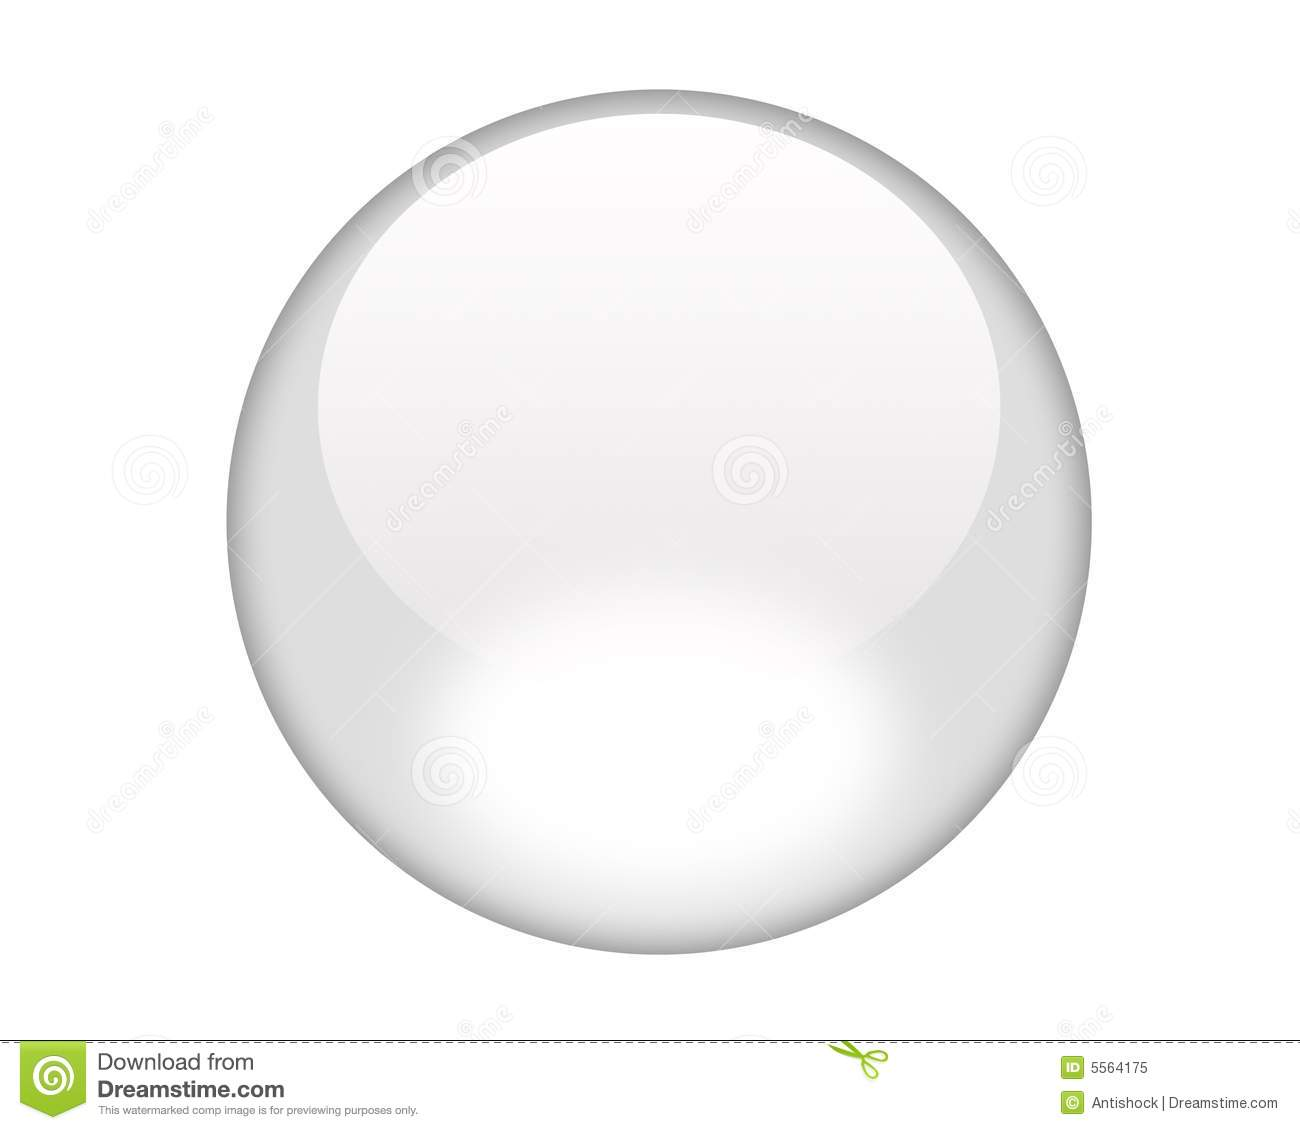 White Aqua Button Royalty Free Stock Photo - Image: 5564175